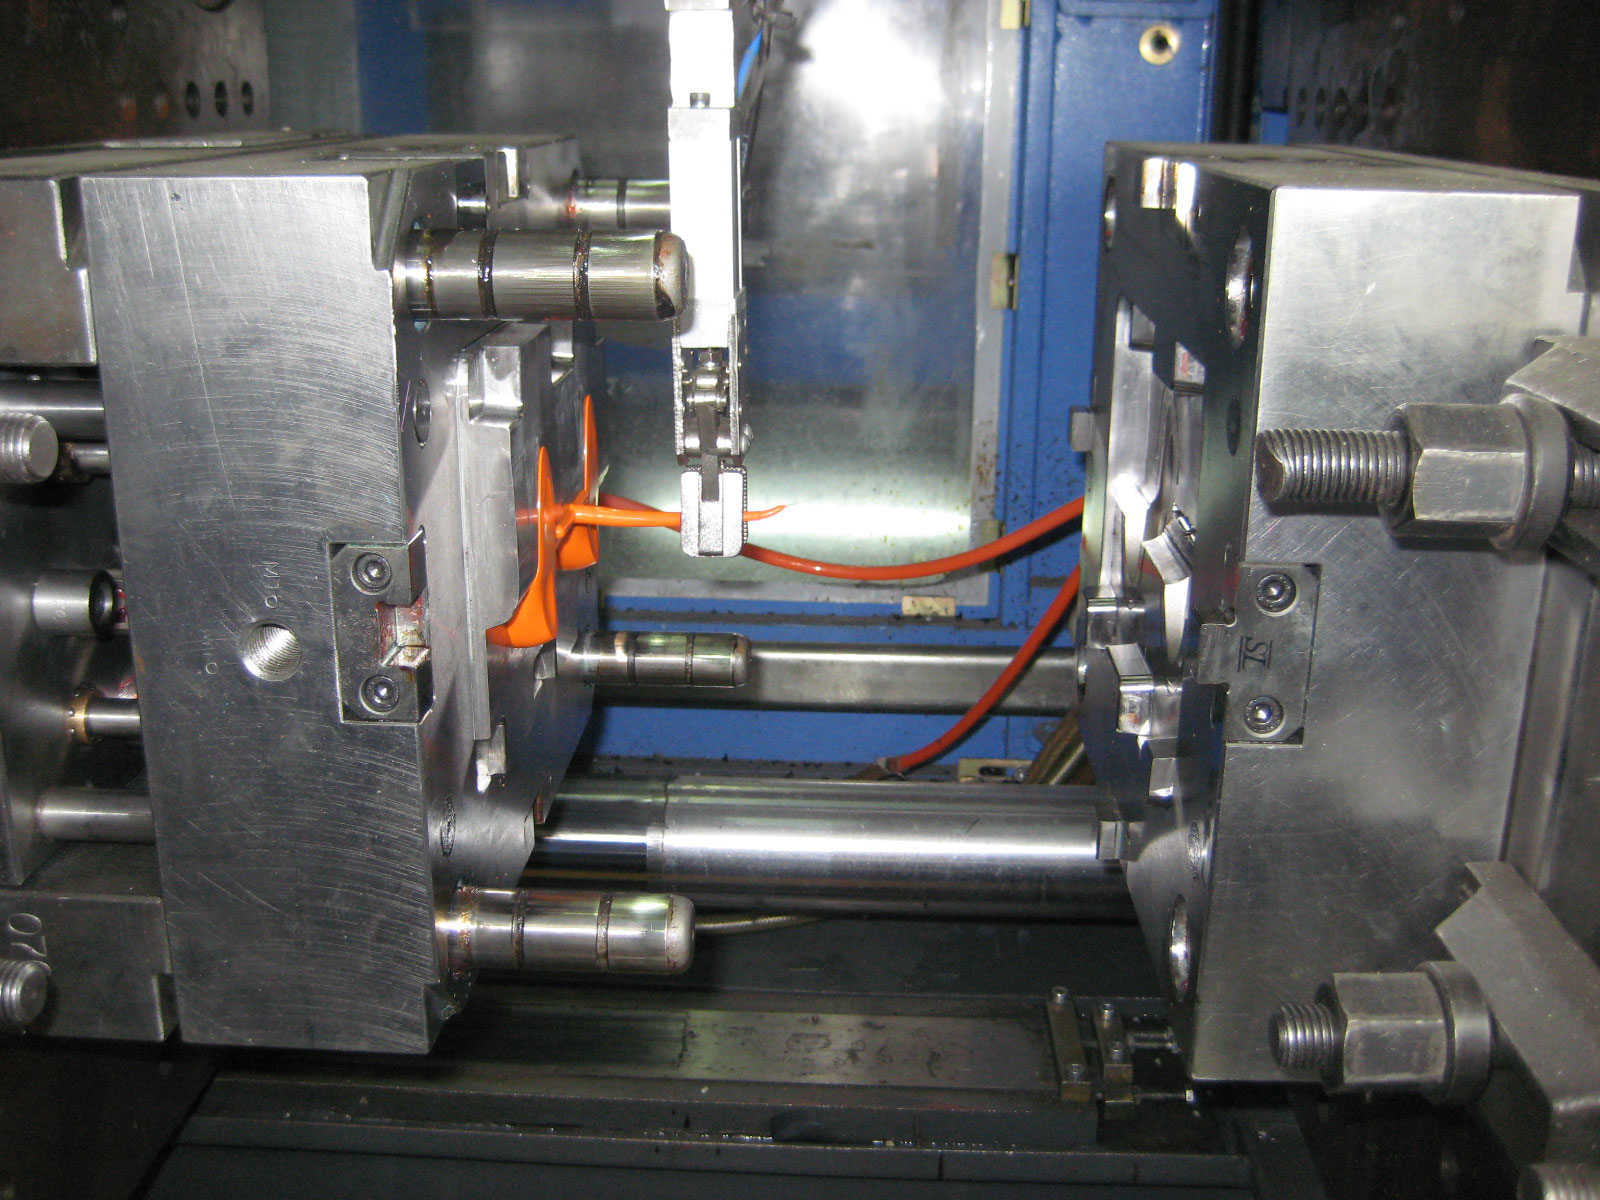 injection molding Today, arburg is a leading global manufacturer of injection molding machines in which customers worldwide trust for the series production of their plastic parts.